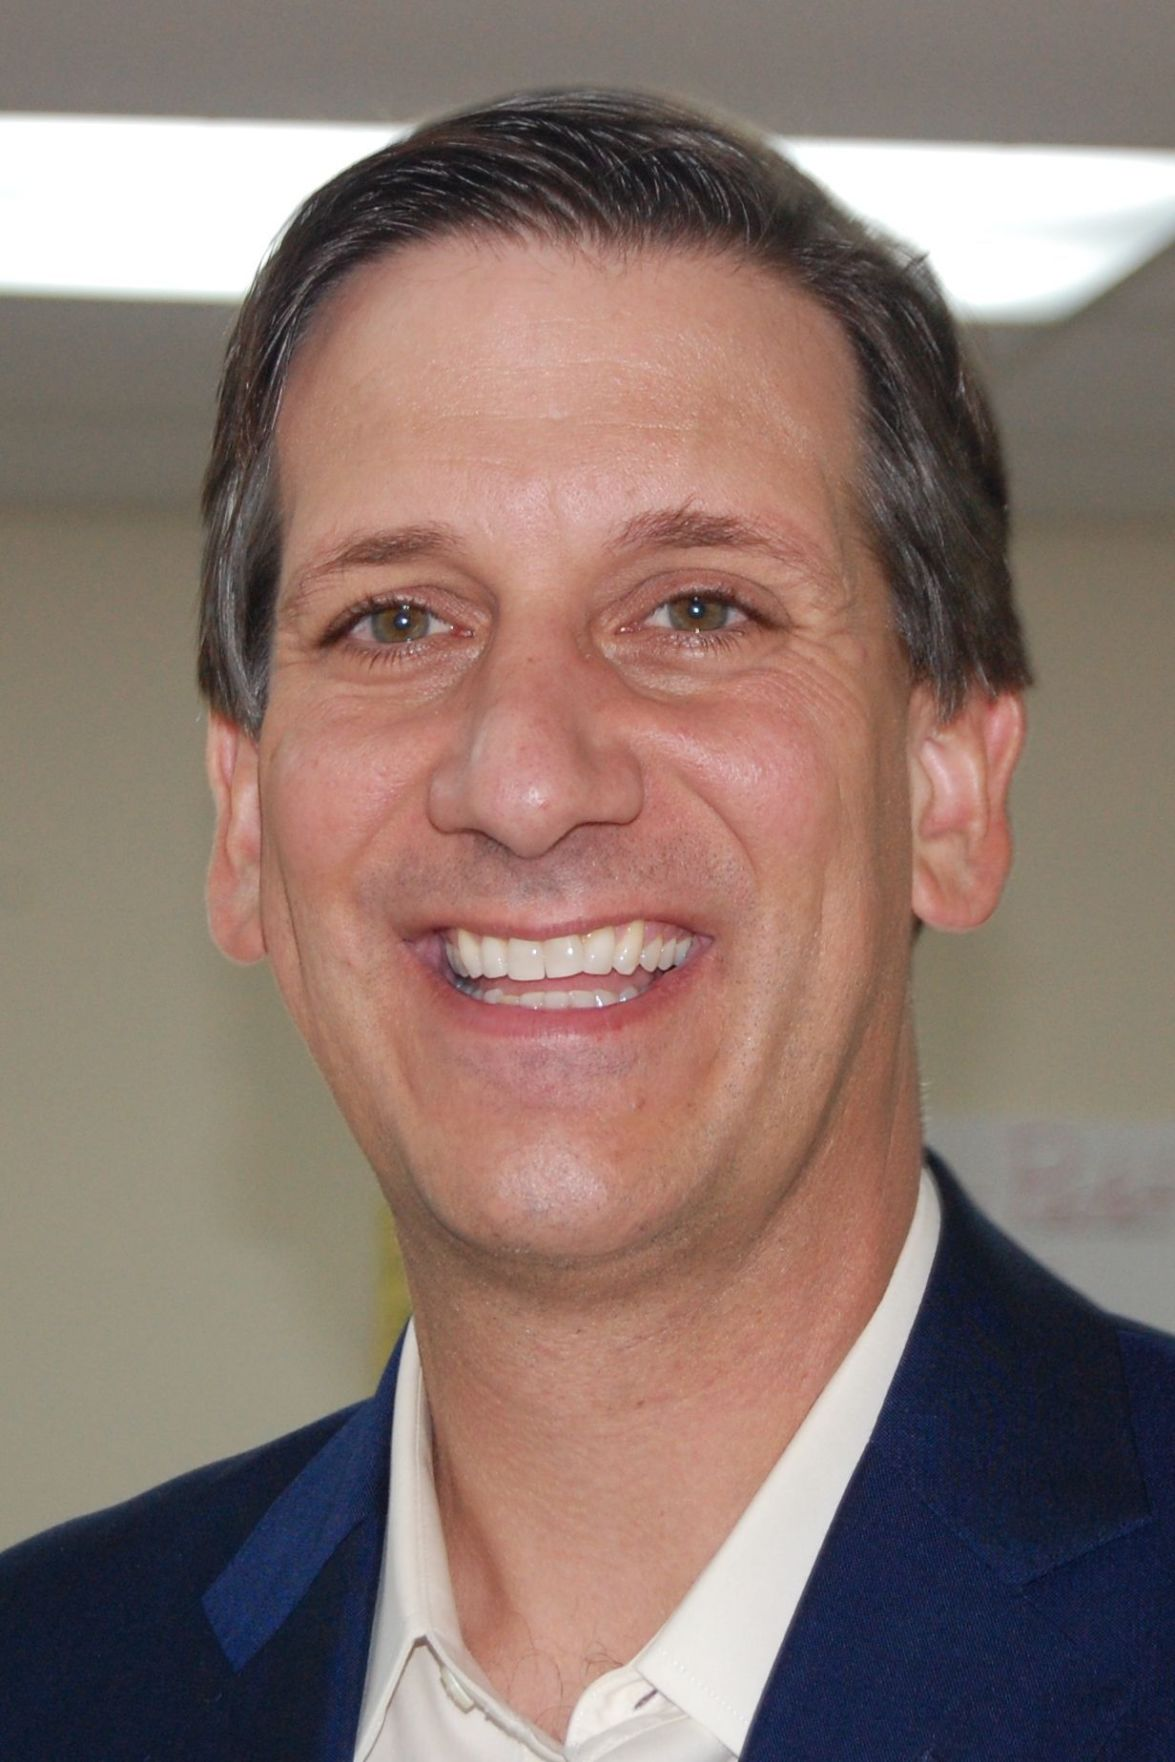 Sheheen says Haley is indifferent to state's needs